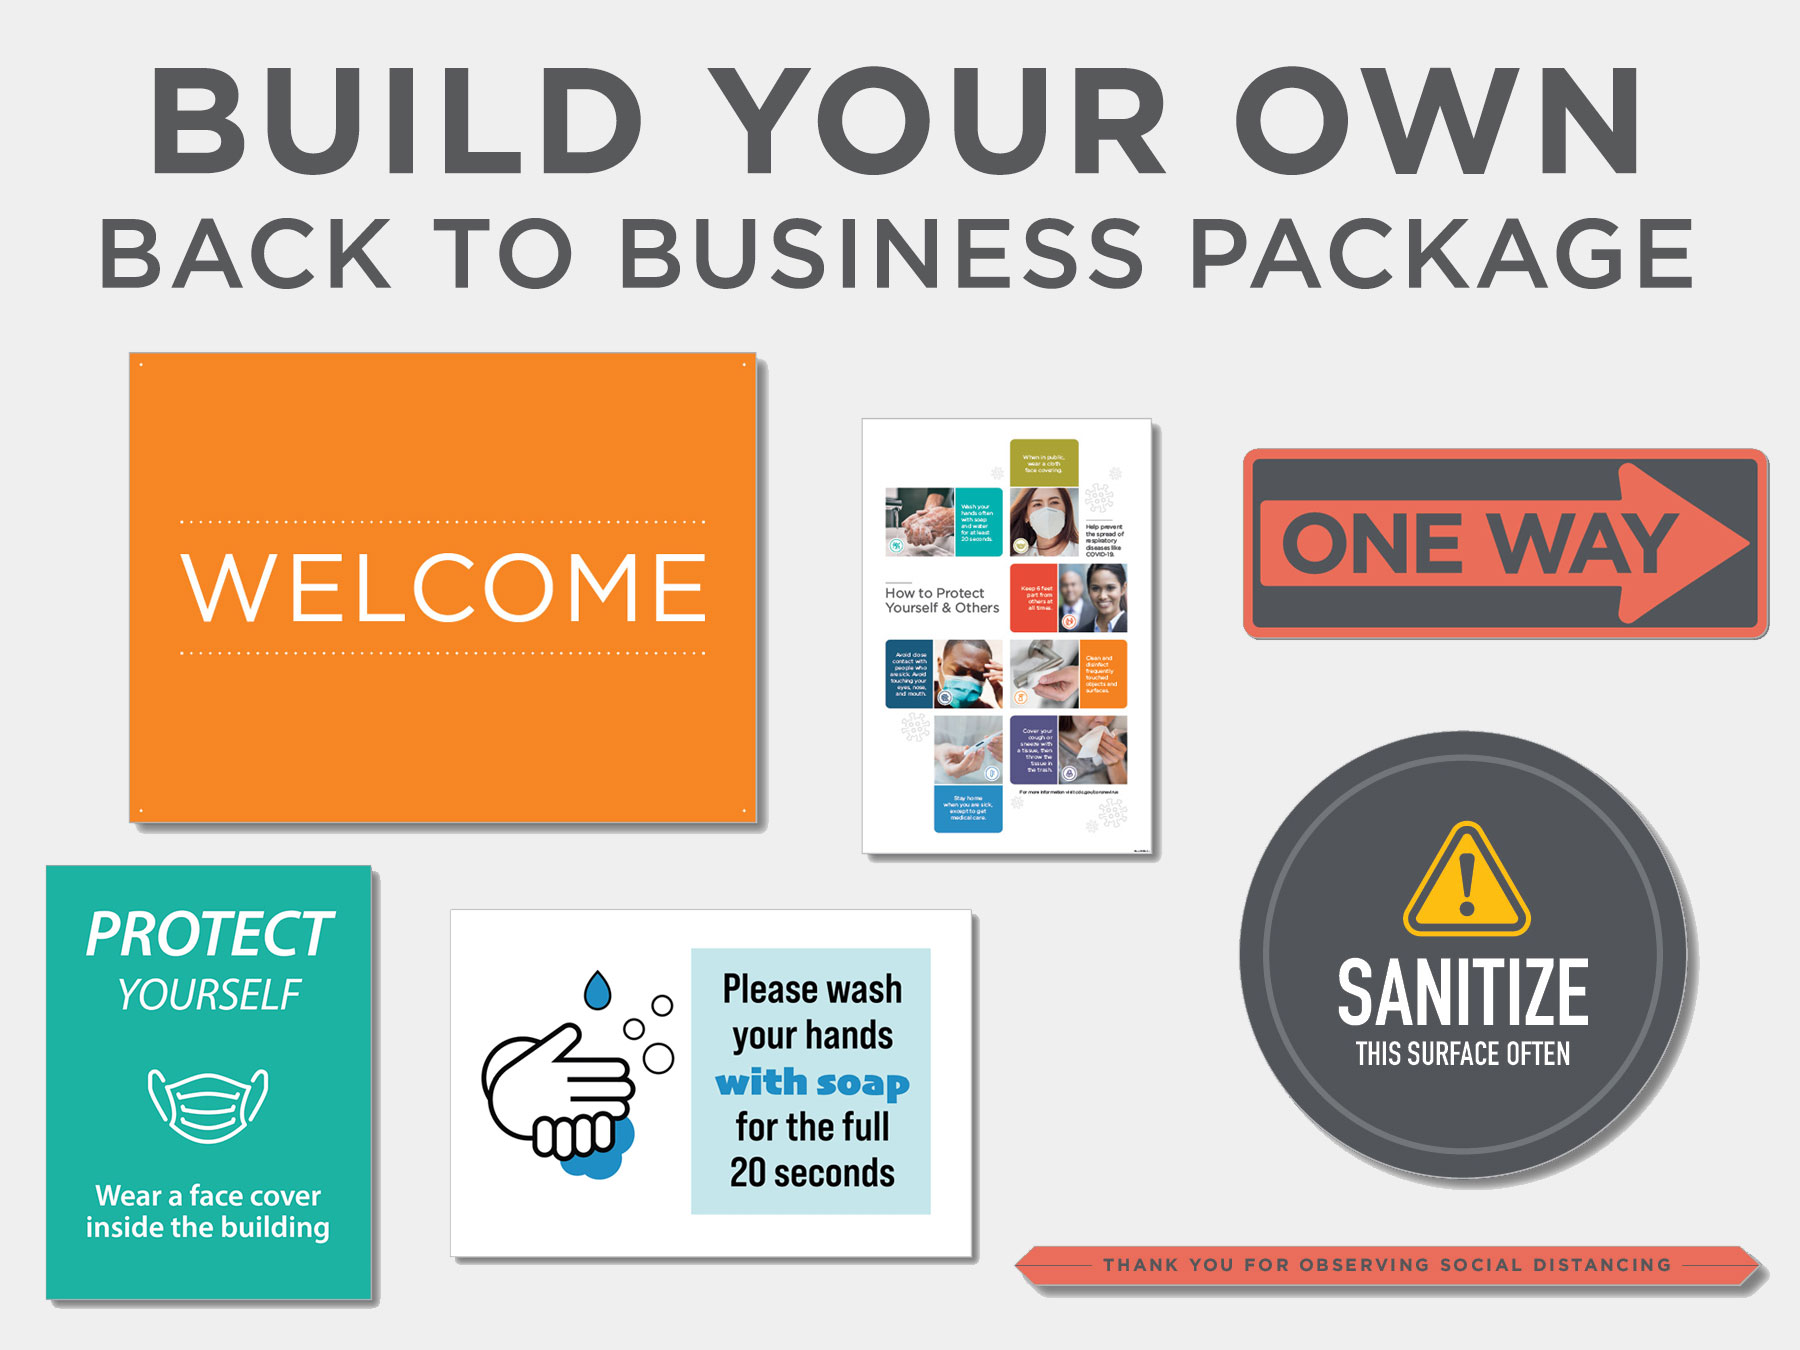 Build Your Own Back to Business Package